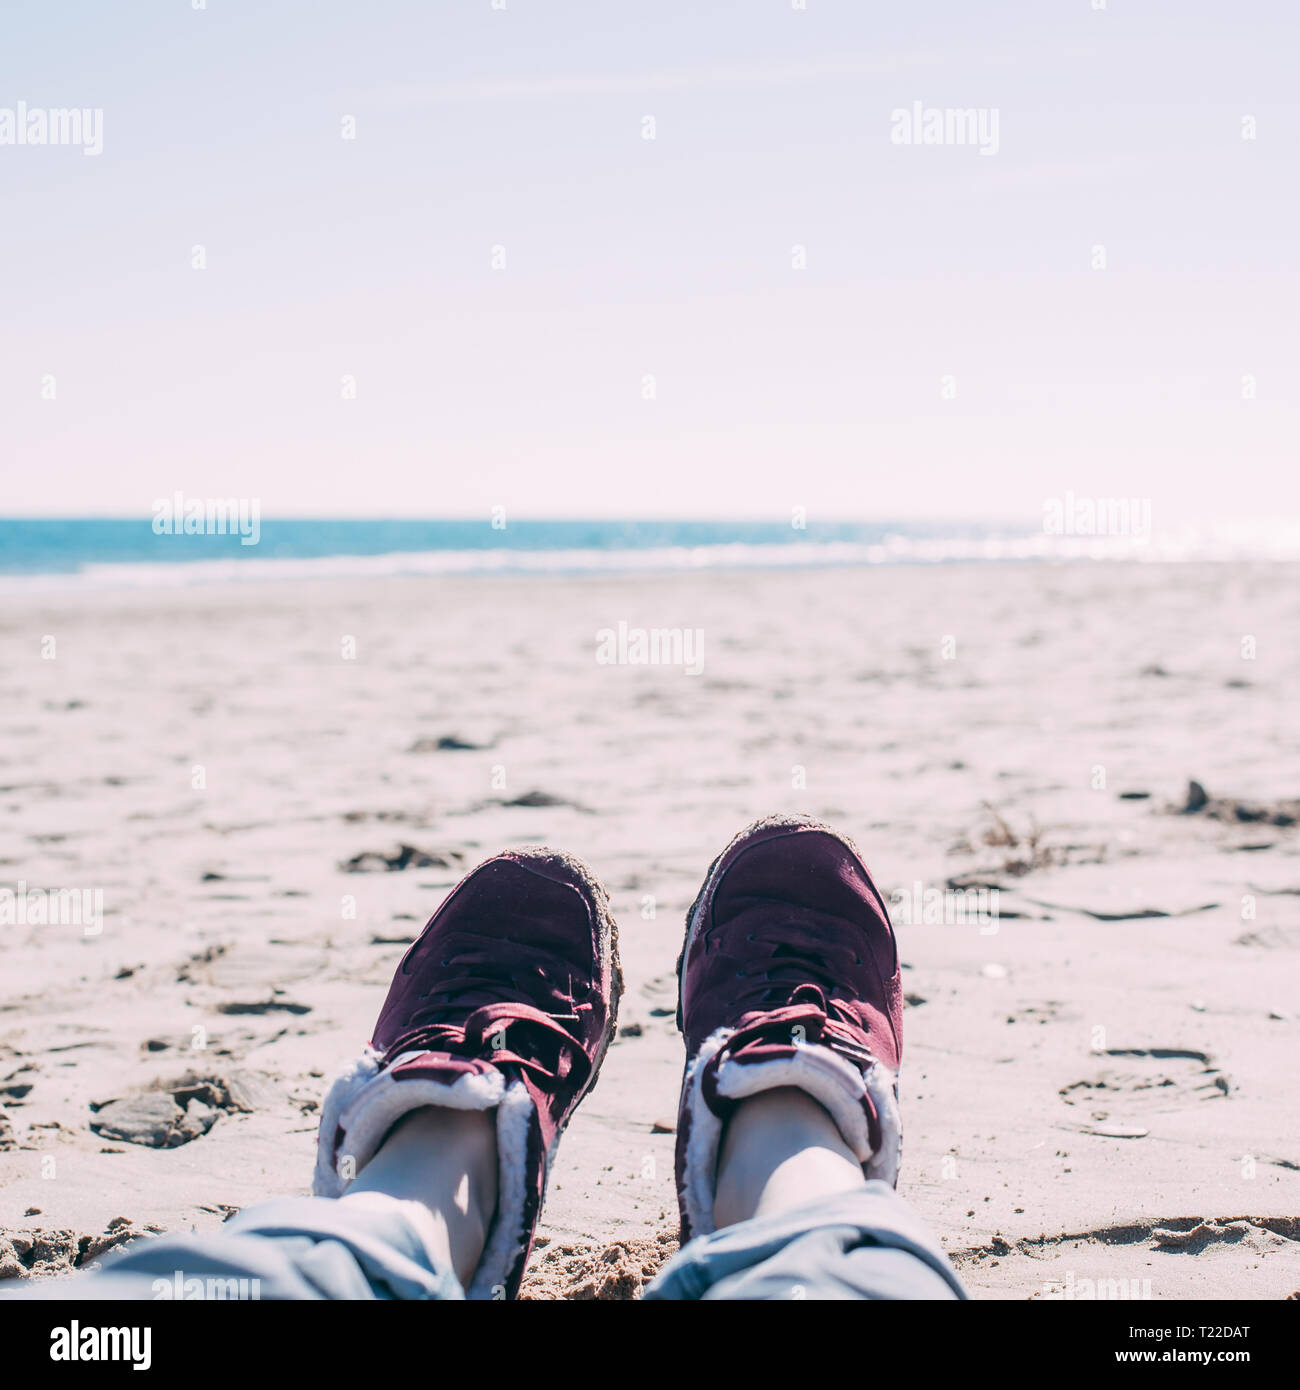 Woman At Beach Quotes Stock Photos & Woman At Beach Quotes ...